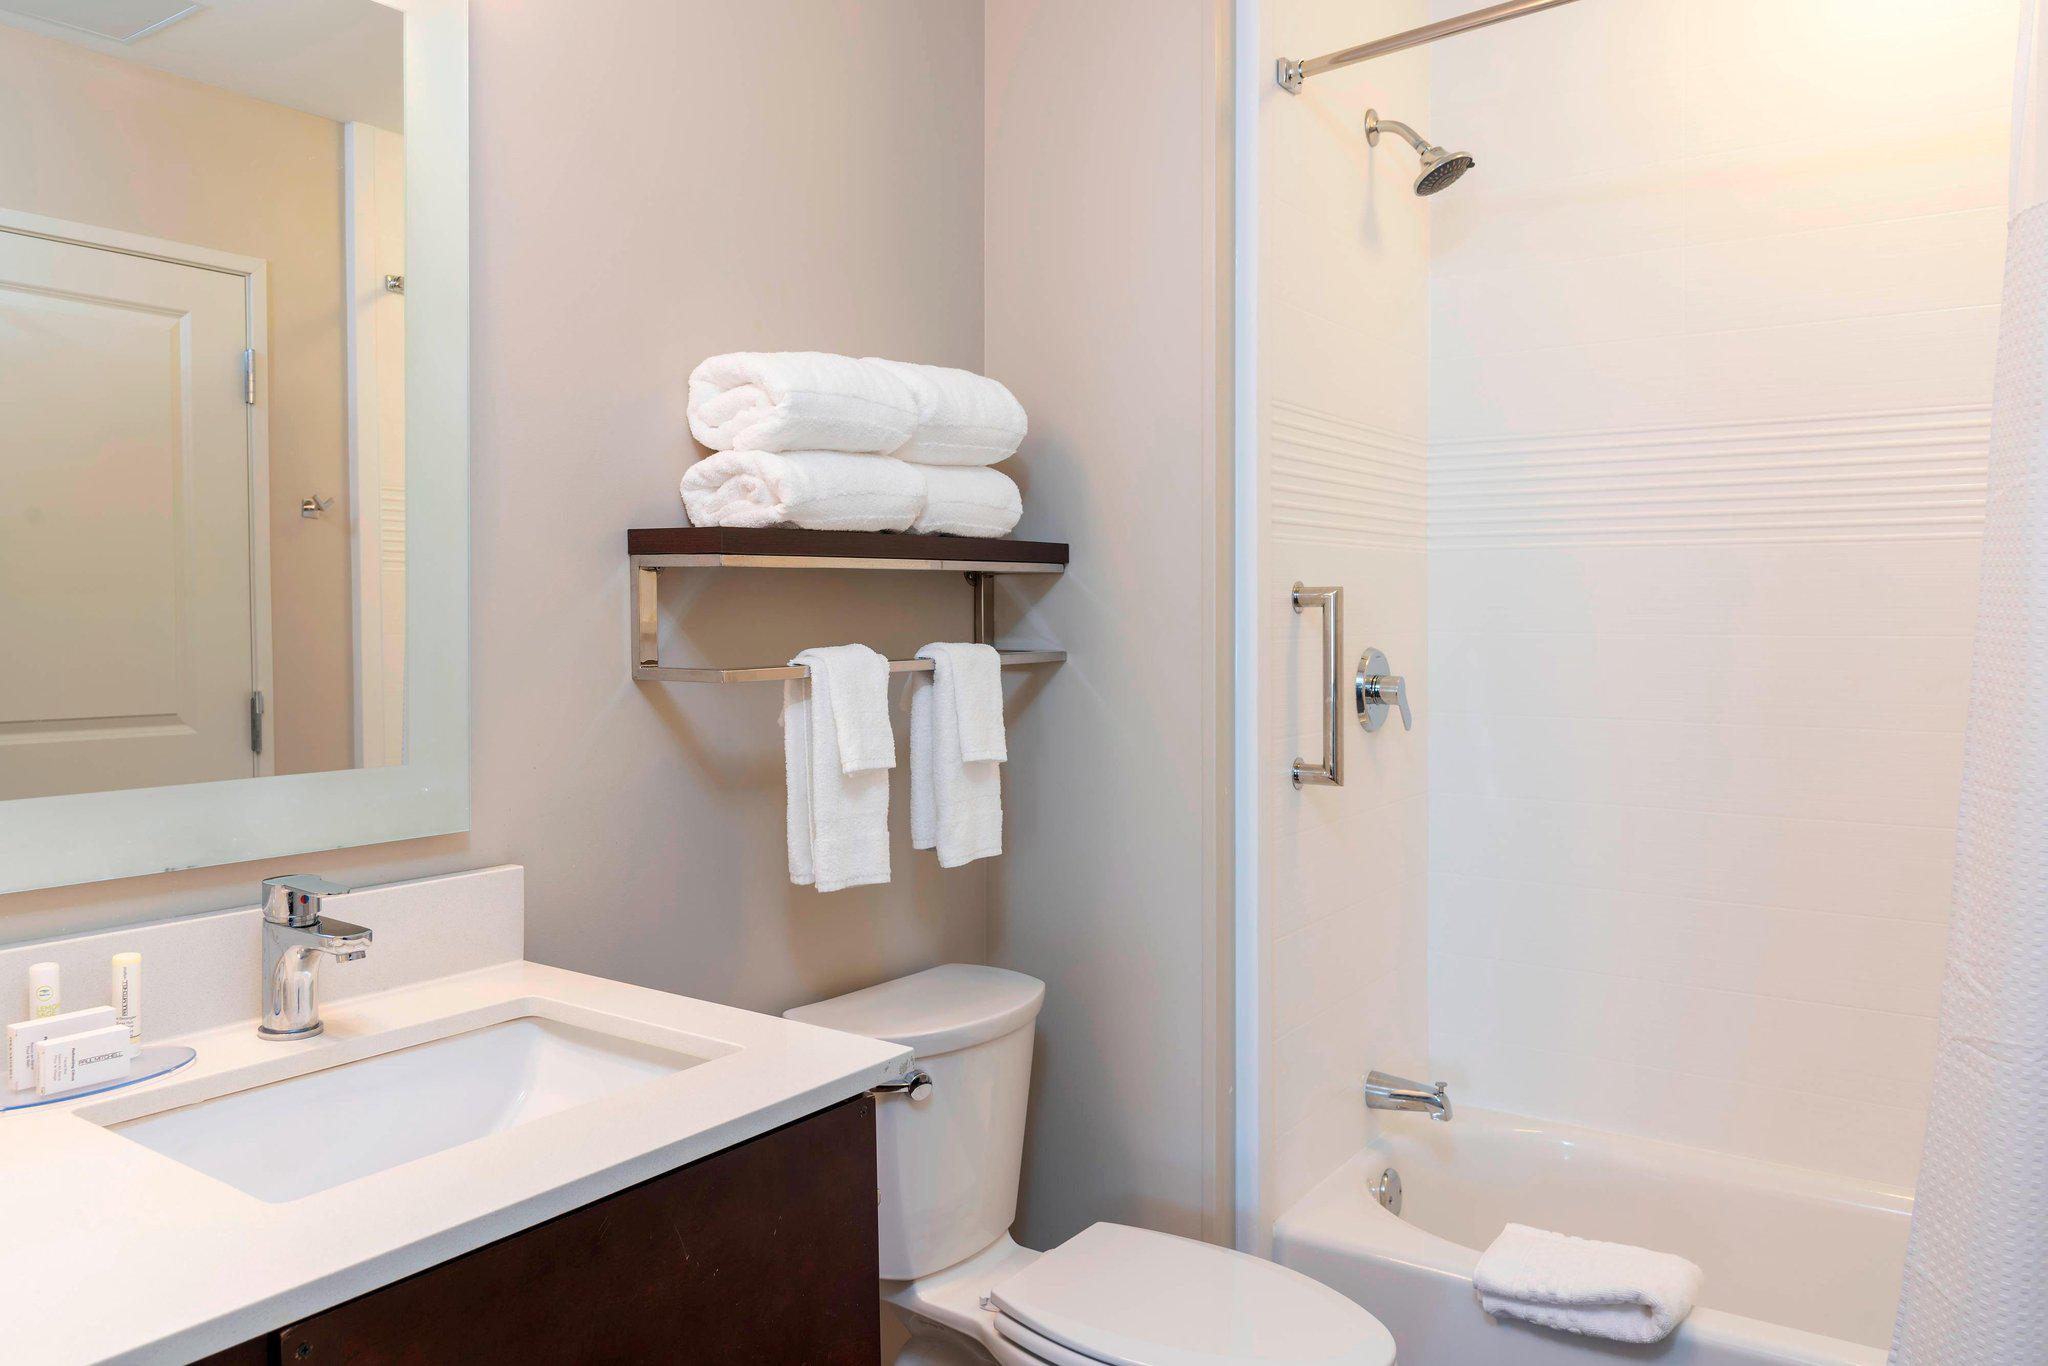 TownePlace Suites by Marriott Louisville North